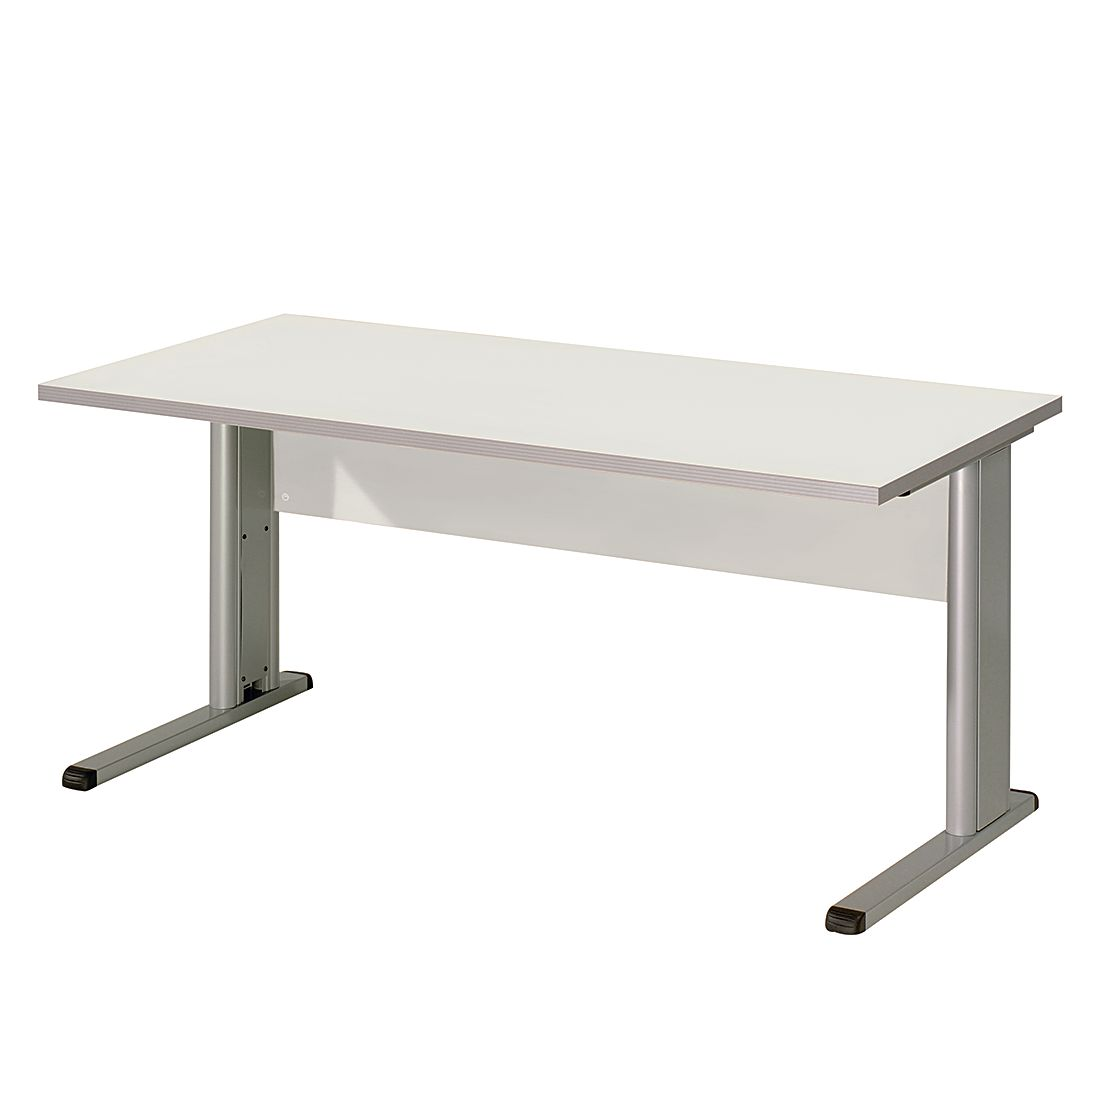 Home 24 - Table de bureau kirk iv - gris clair - plateau de table : 80 x 80 cm, wellemöbel